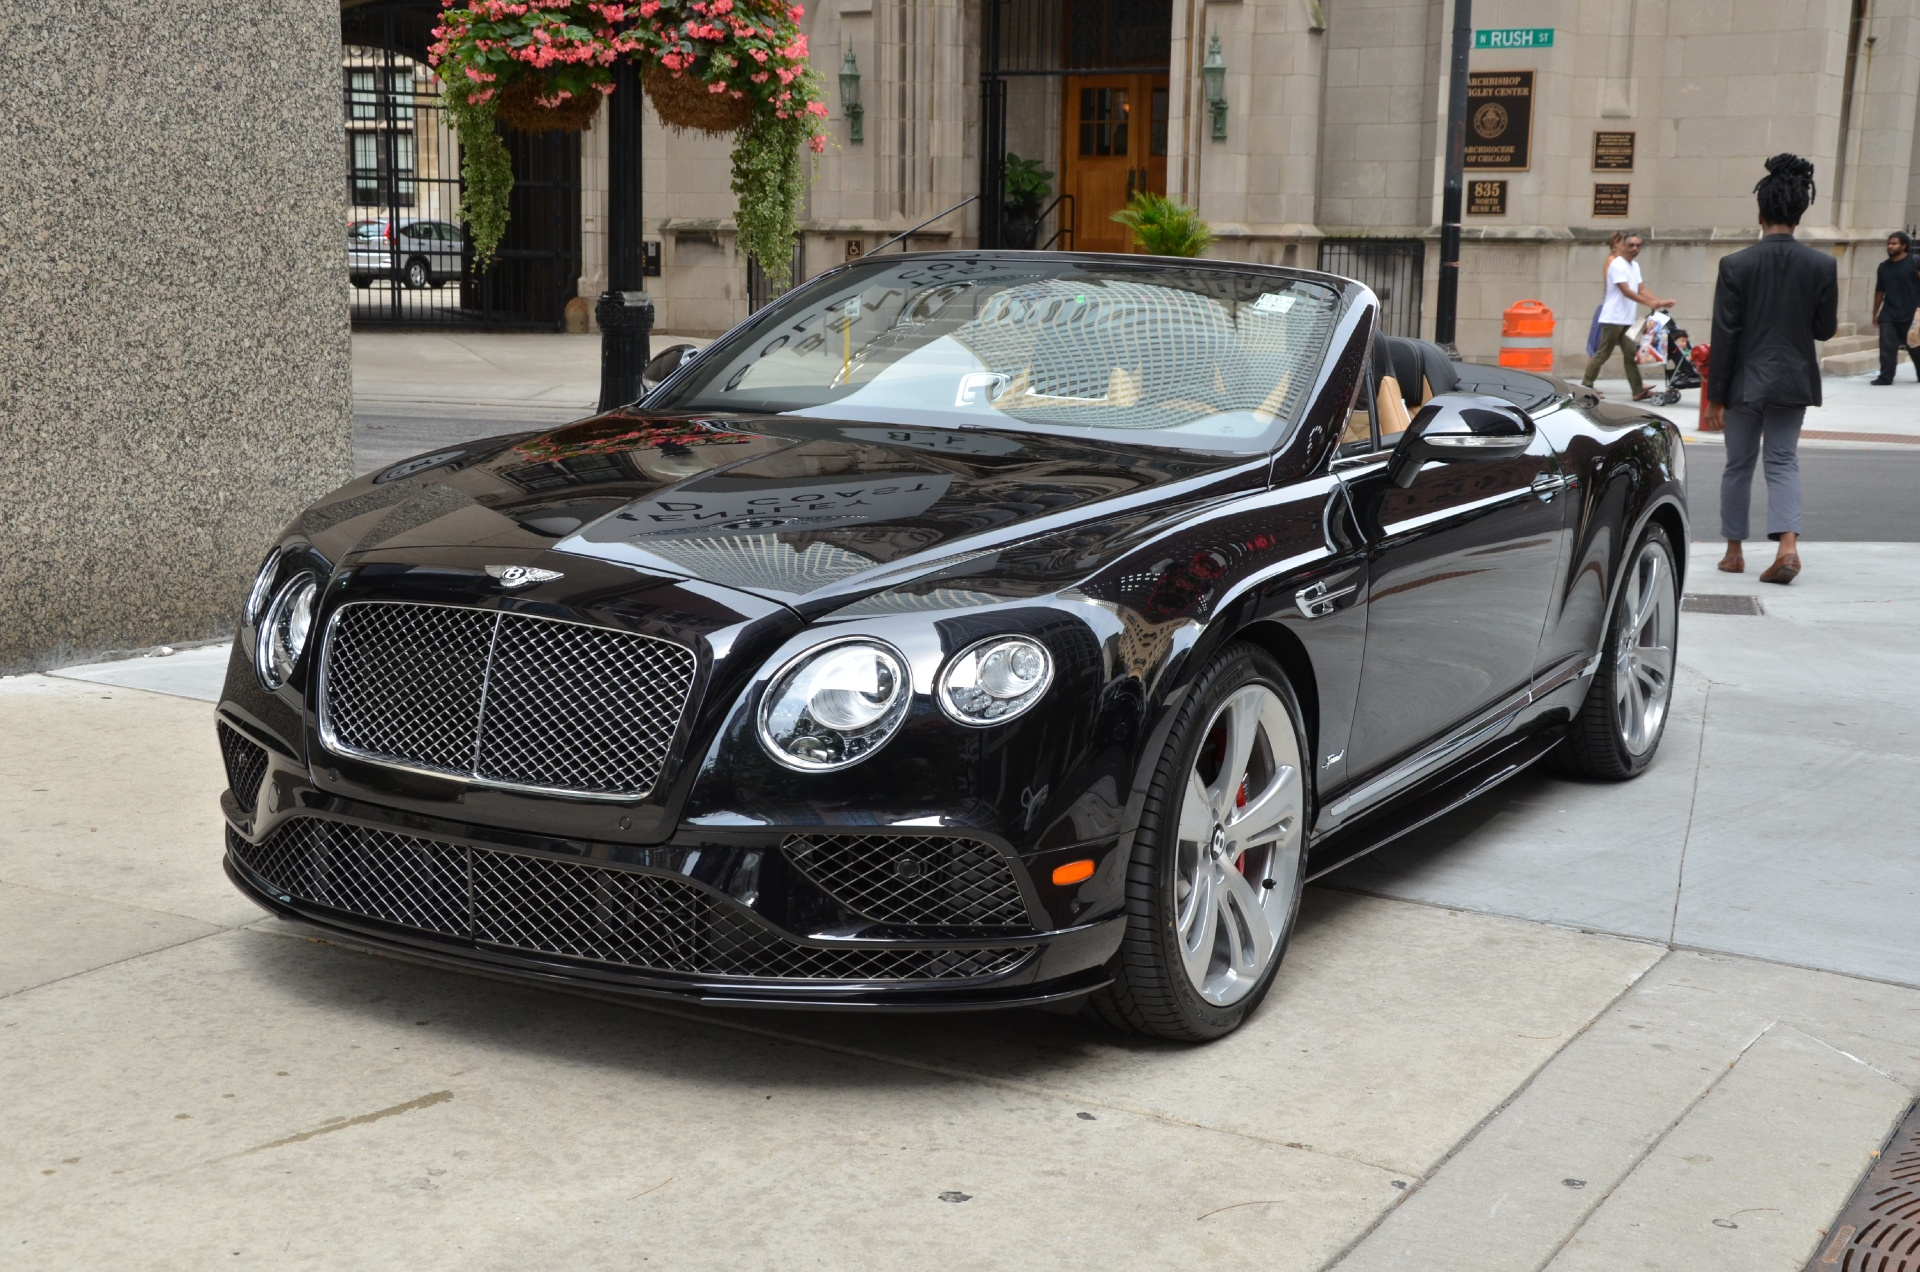 2016 Bentley Continental Gtc Speed Stock B732 S For Sale